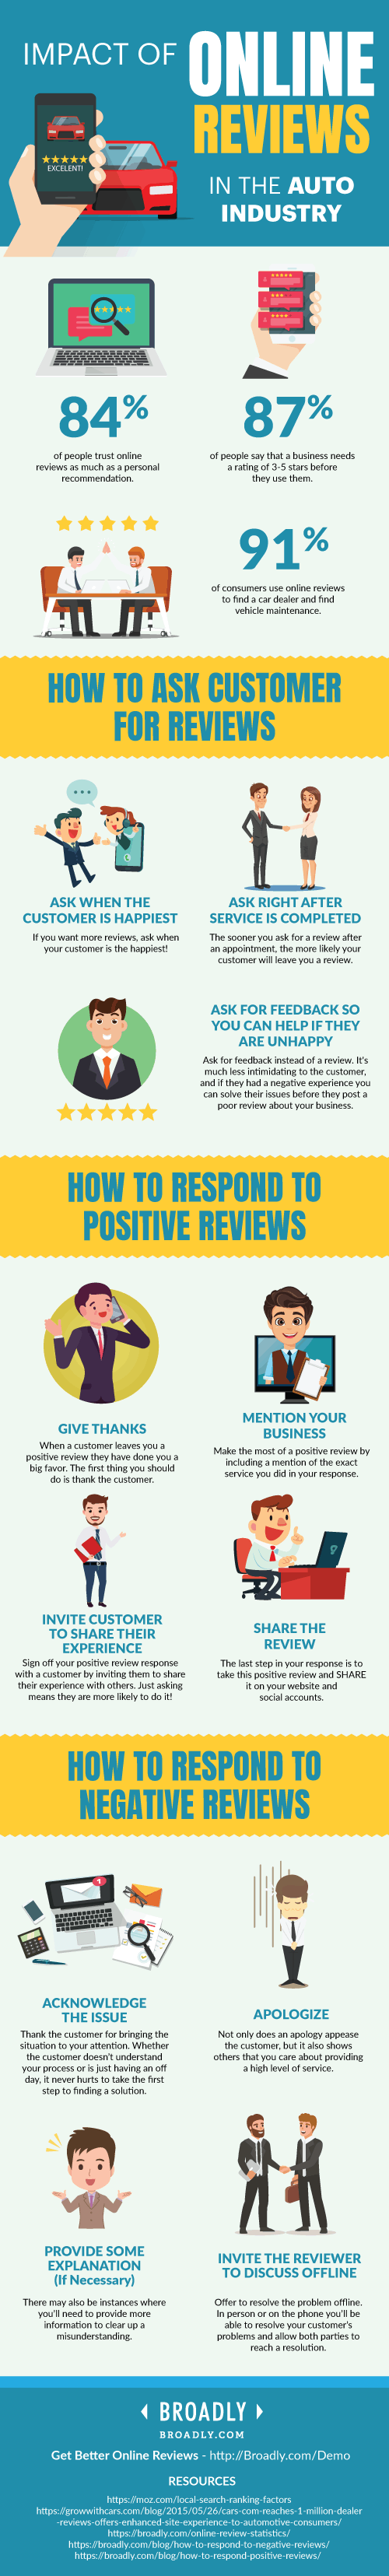 Auto Industry Online Reviews Infographic